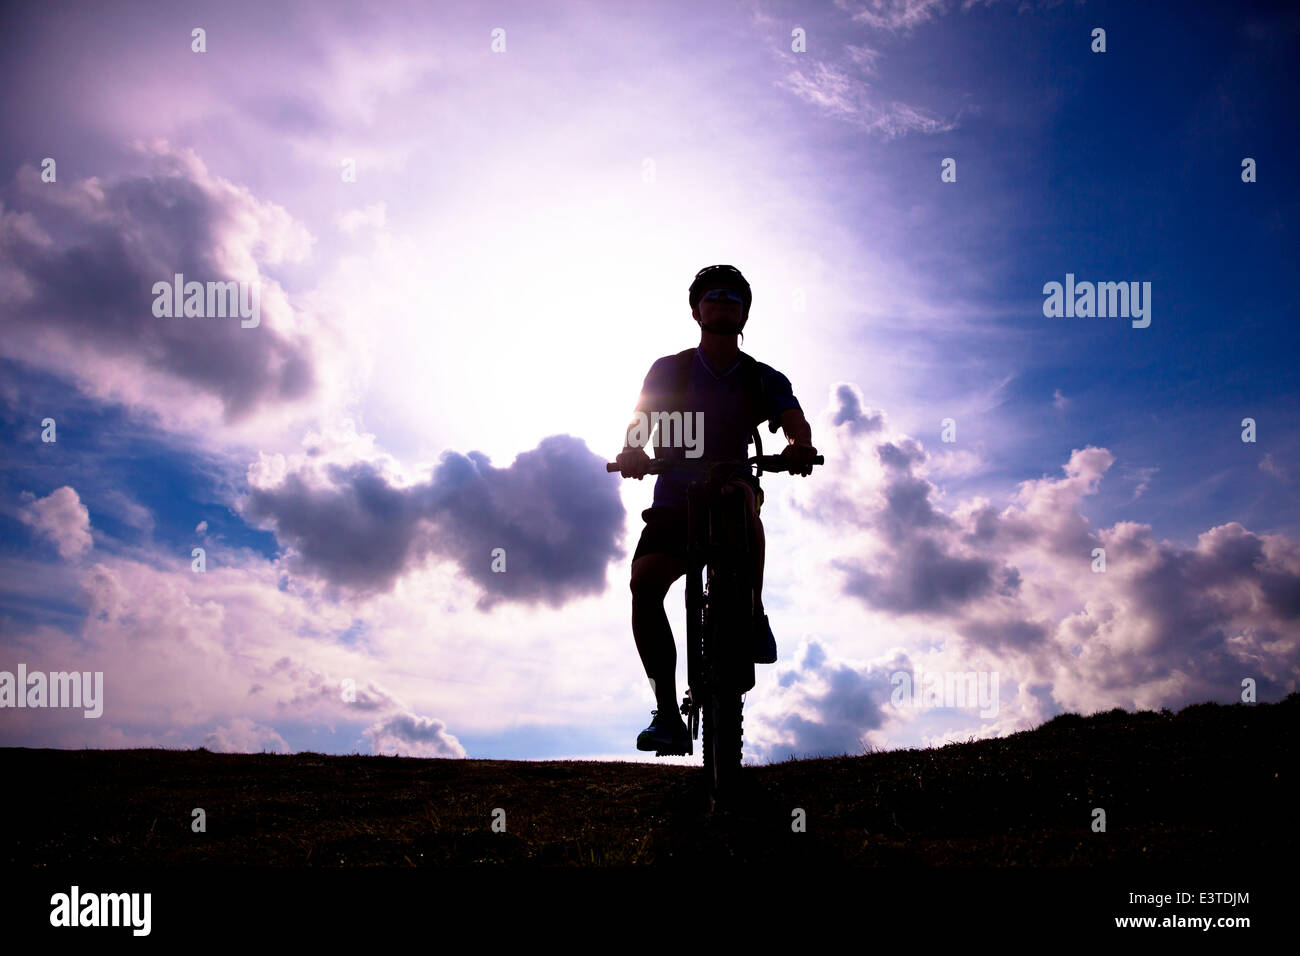 mountain bicycle rider on the hill with sunrise background - Stock Image